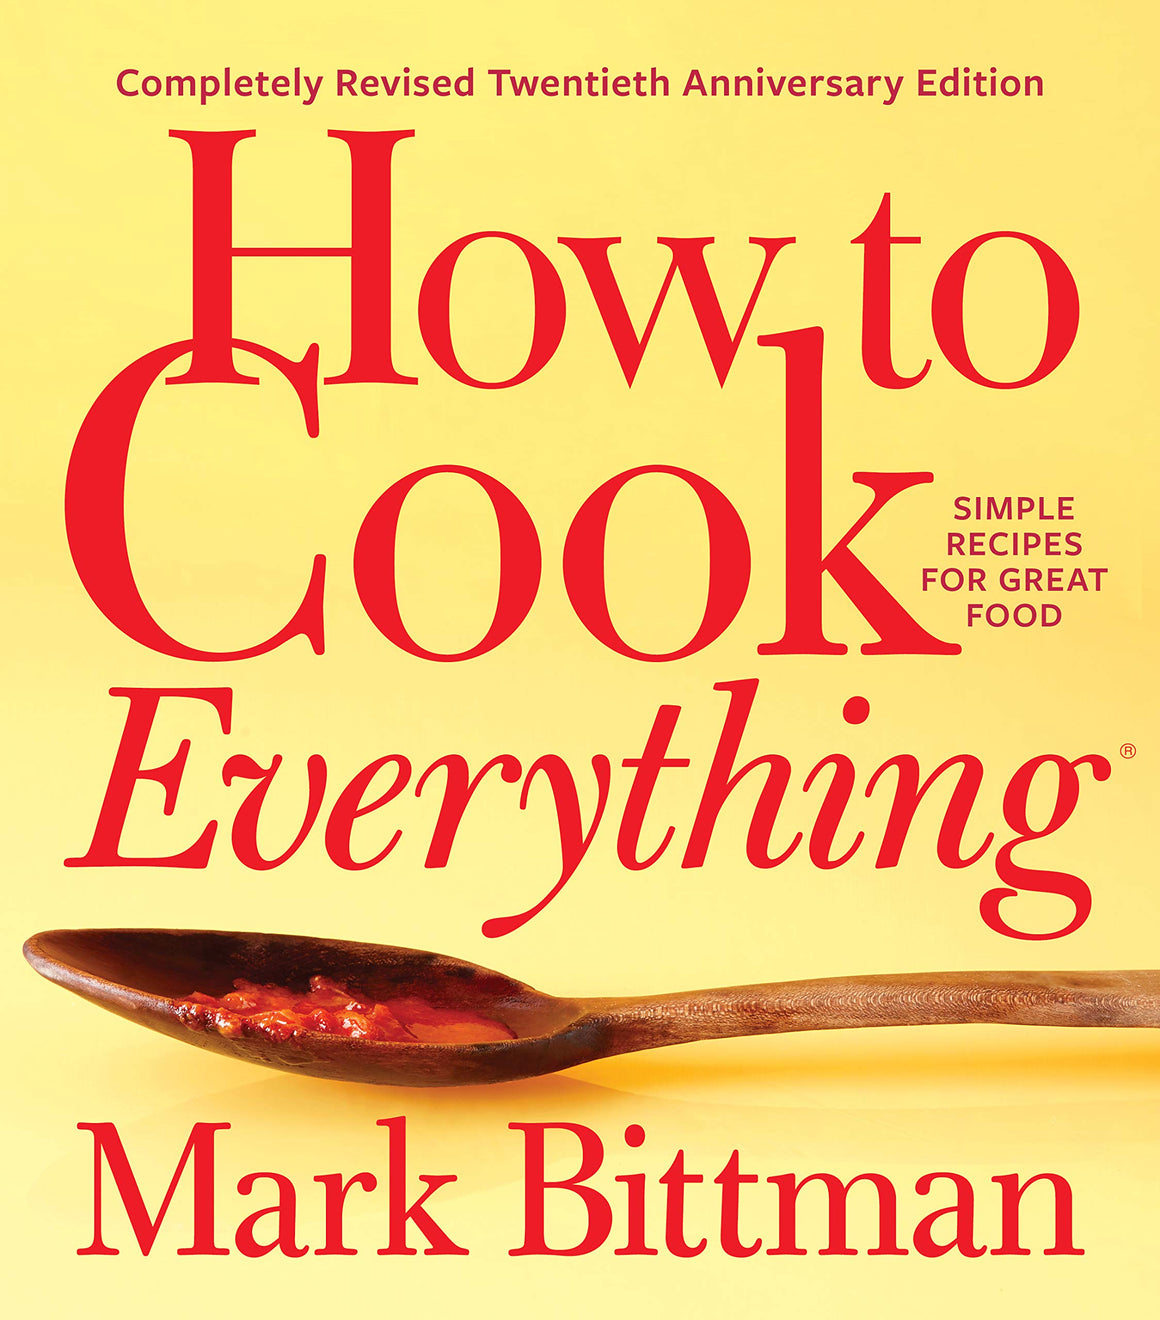 Mark Bittman. How to Cook Everything―Completely Revised Twentieth Anniversary Edition: Simple Recipes for Great Food.